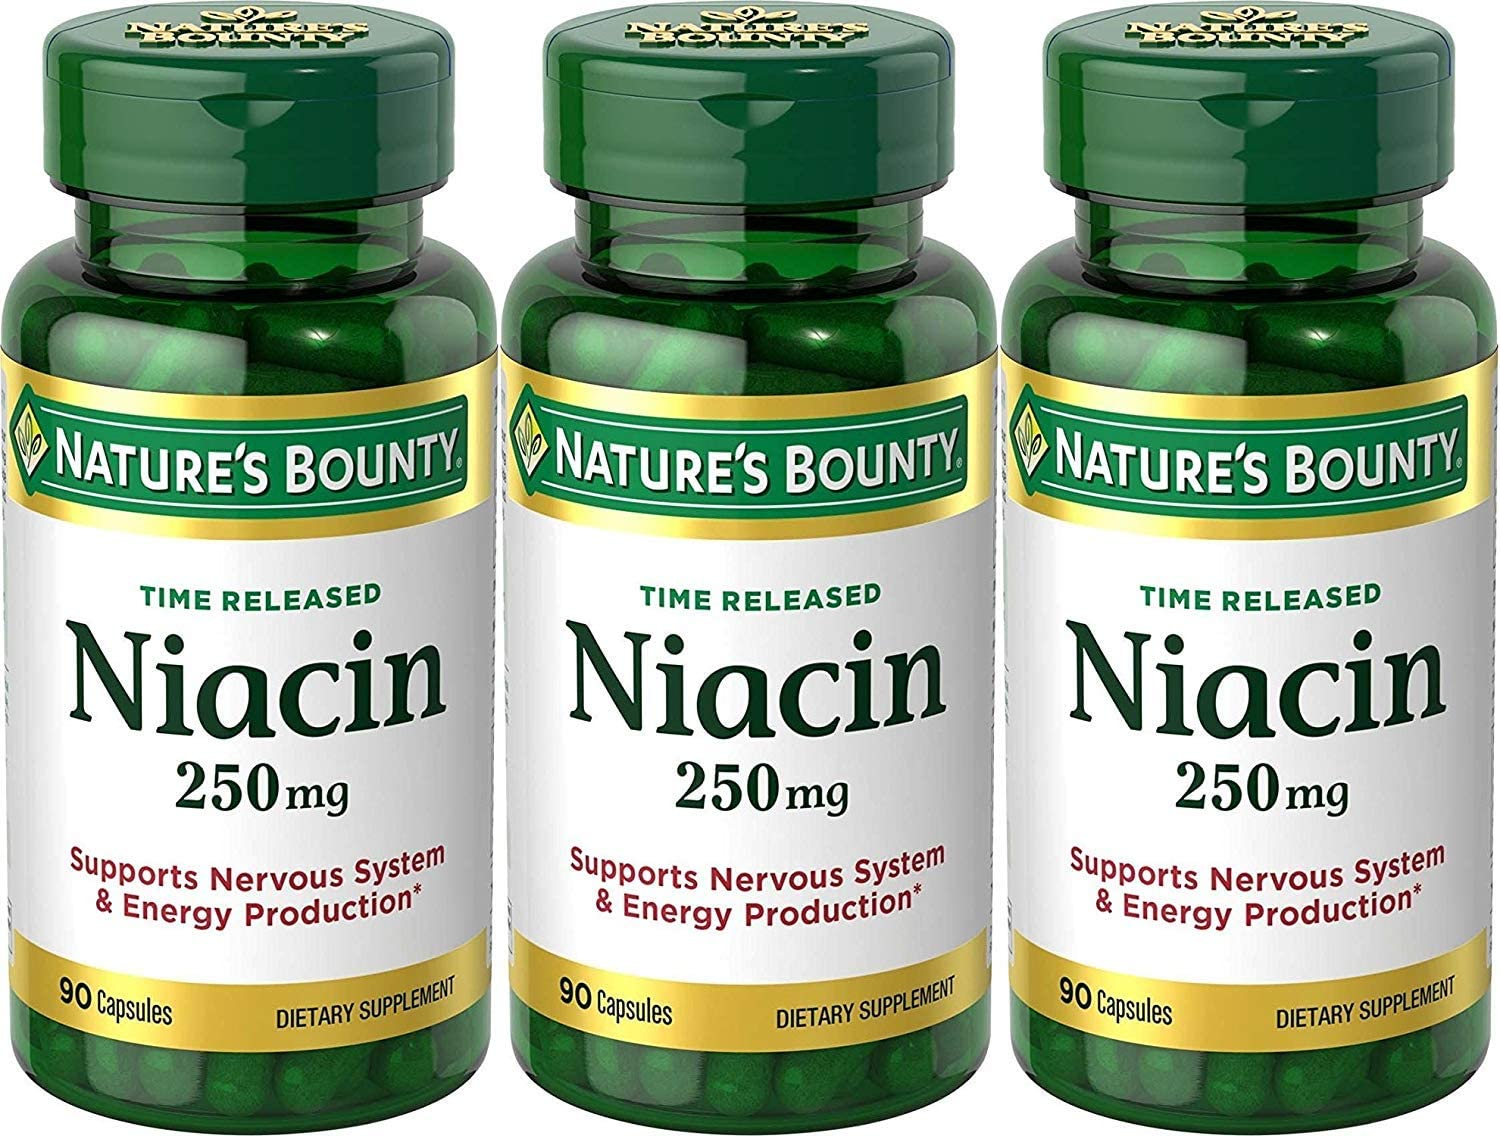 Nature s Bounty Time Released Niacin 250 Mg., 90 Capsules Pack of 3